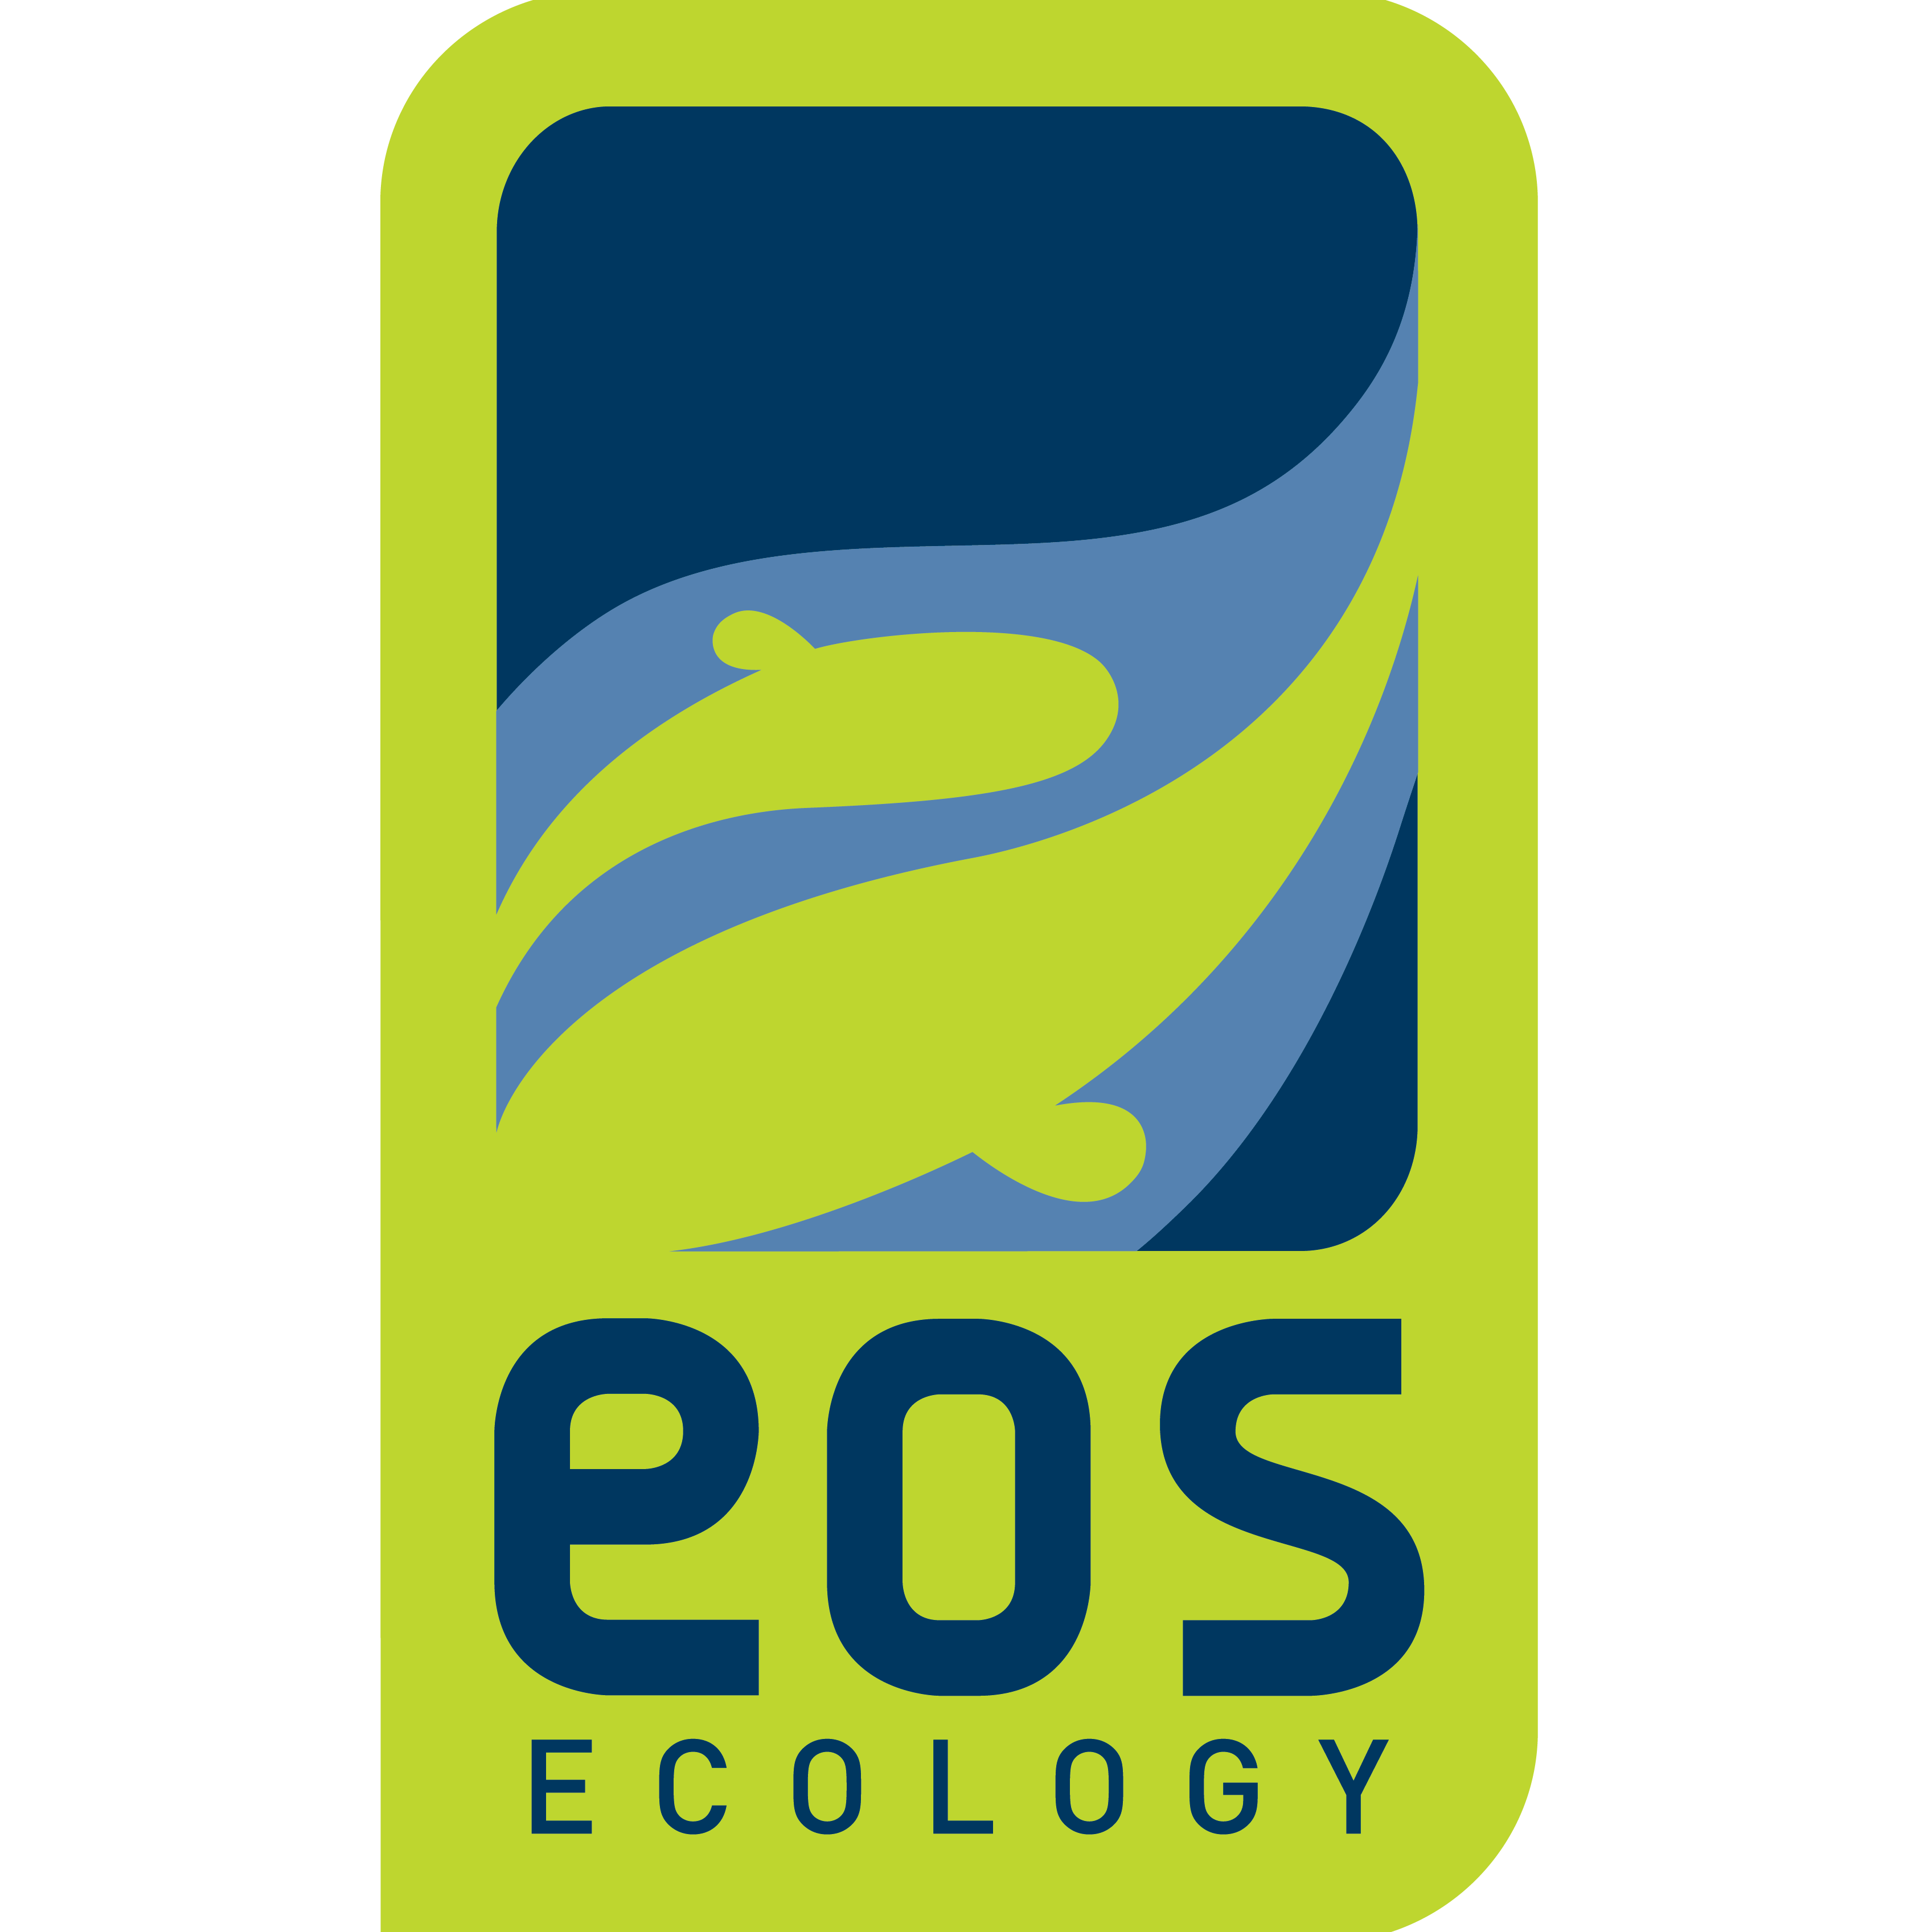 EOS Ecology Limited